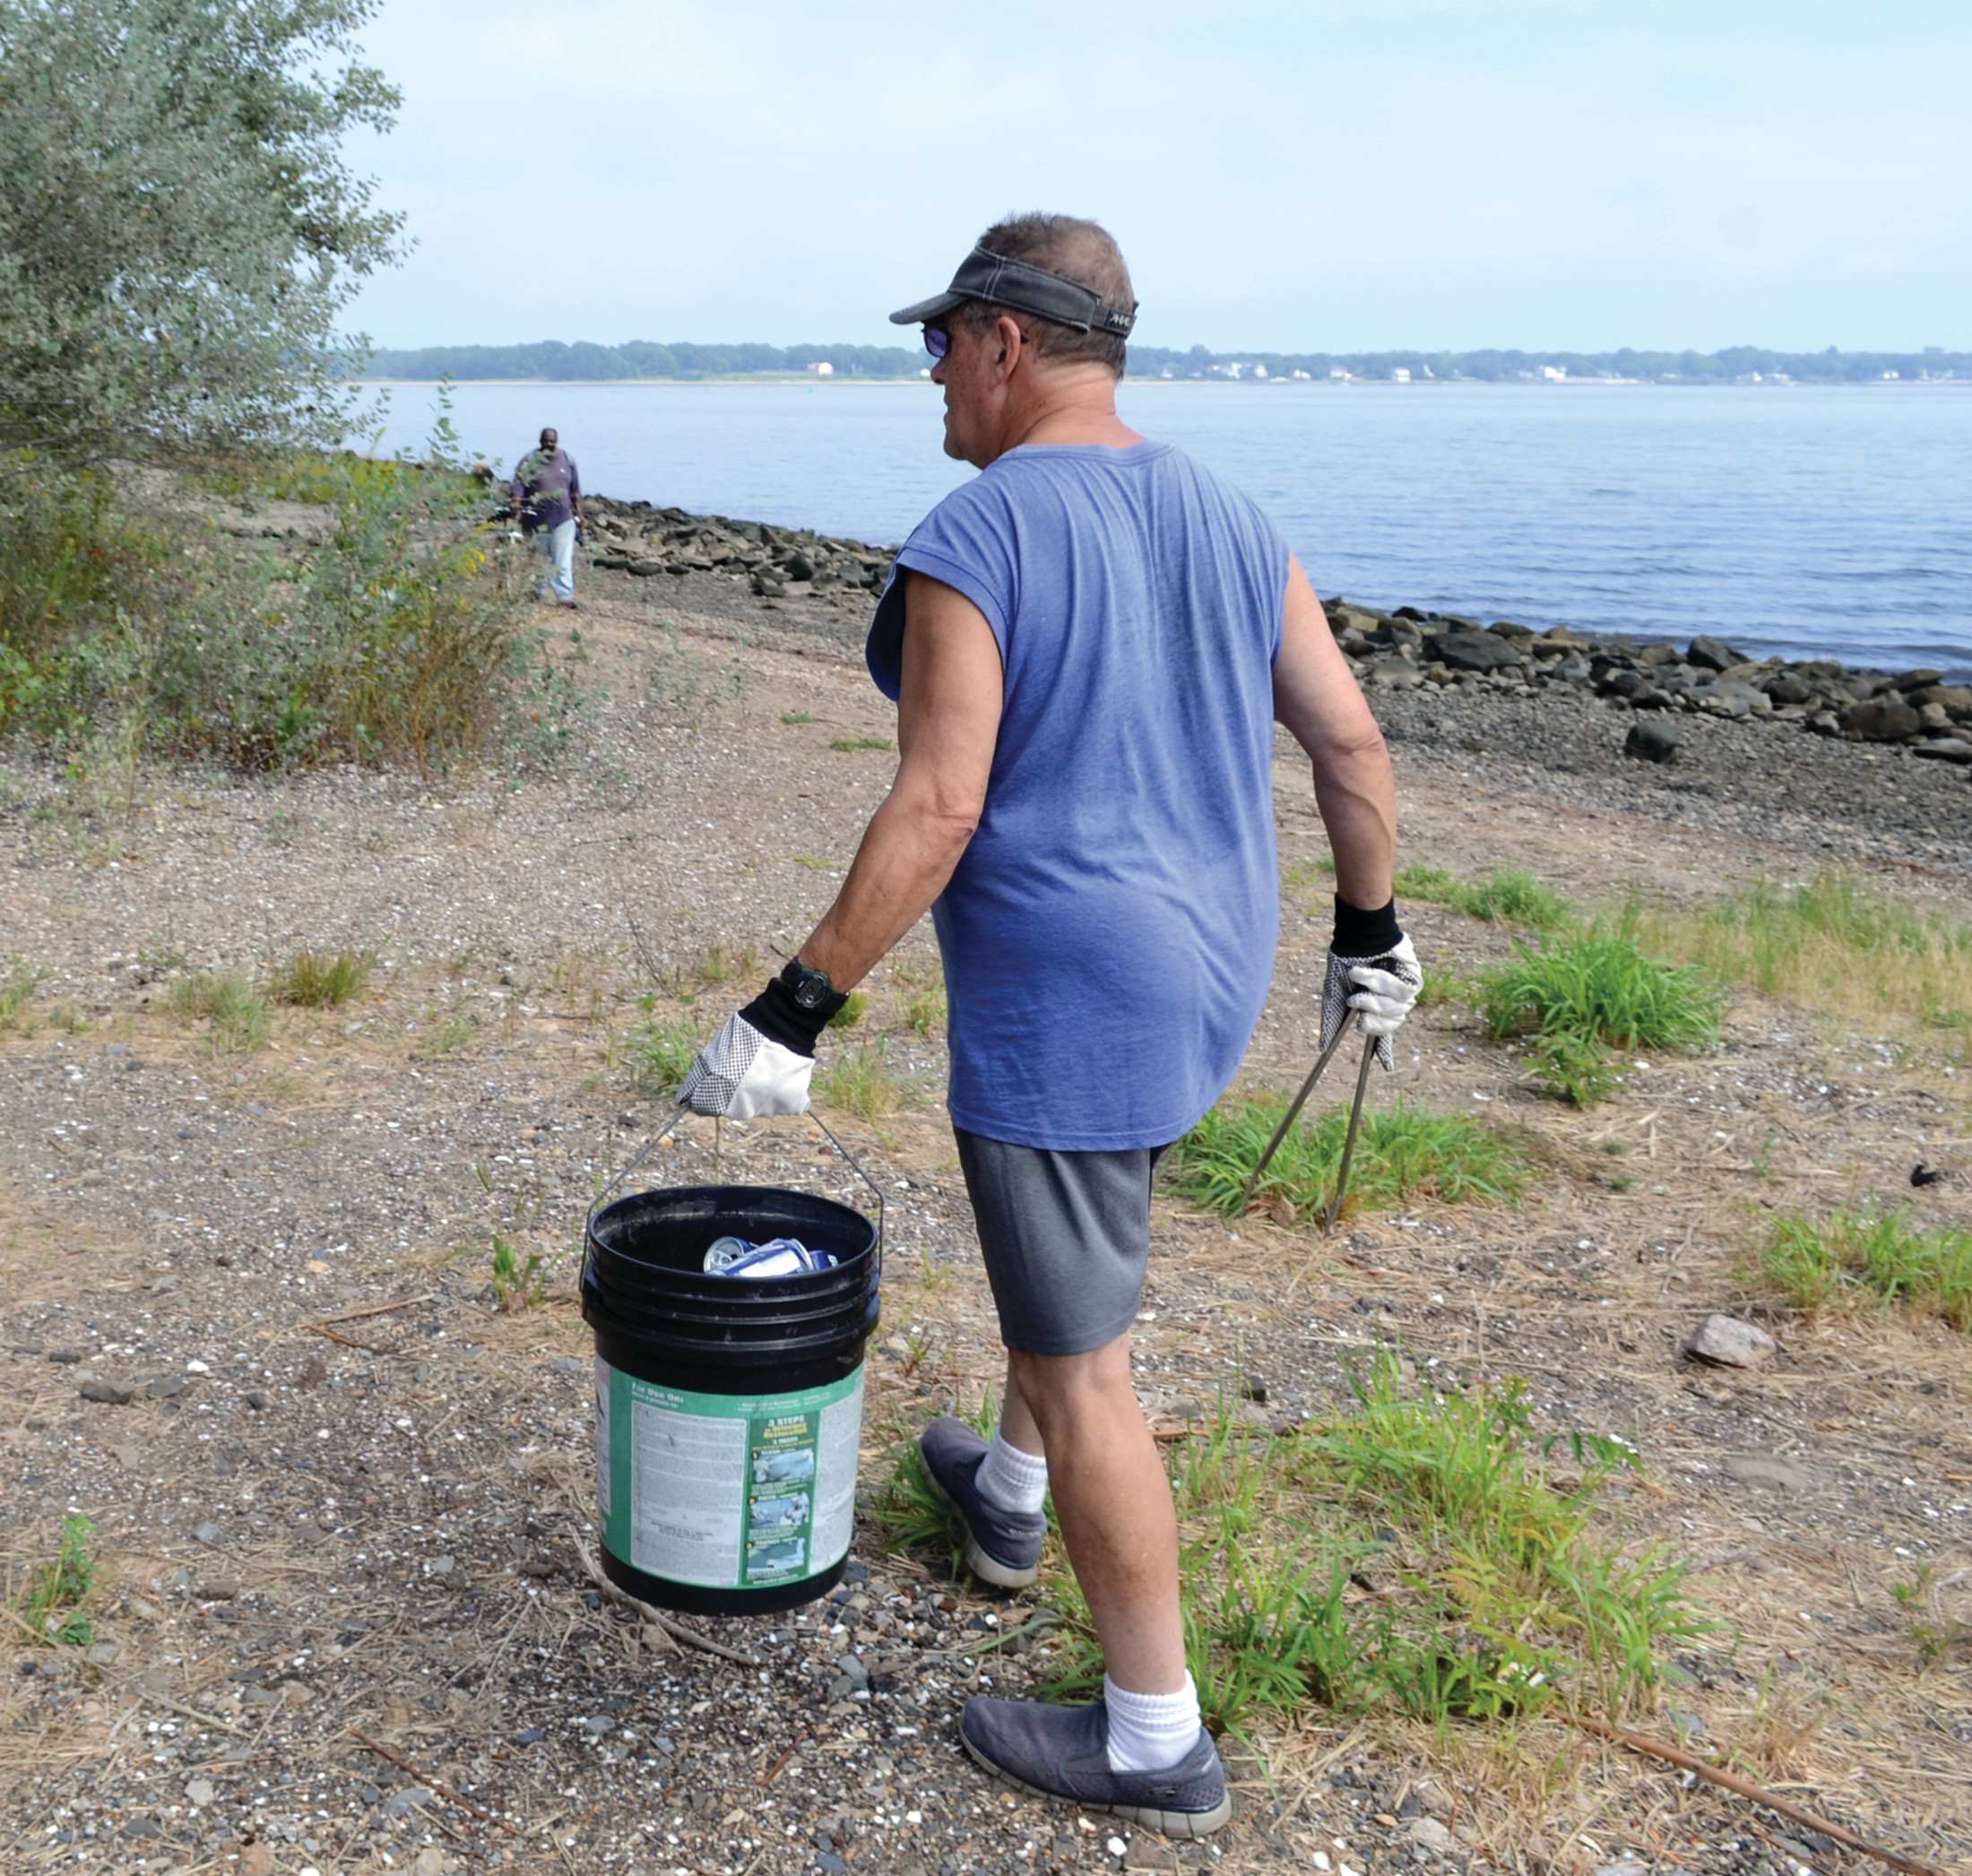 TAKE YOUR PICK: Jim DeAmbrosia scours the beaches of Chepiwanoxet Point with a bucket and a pair of salad tongs, which he finds to be the most effective tool for removing garbage.